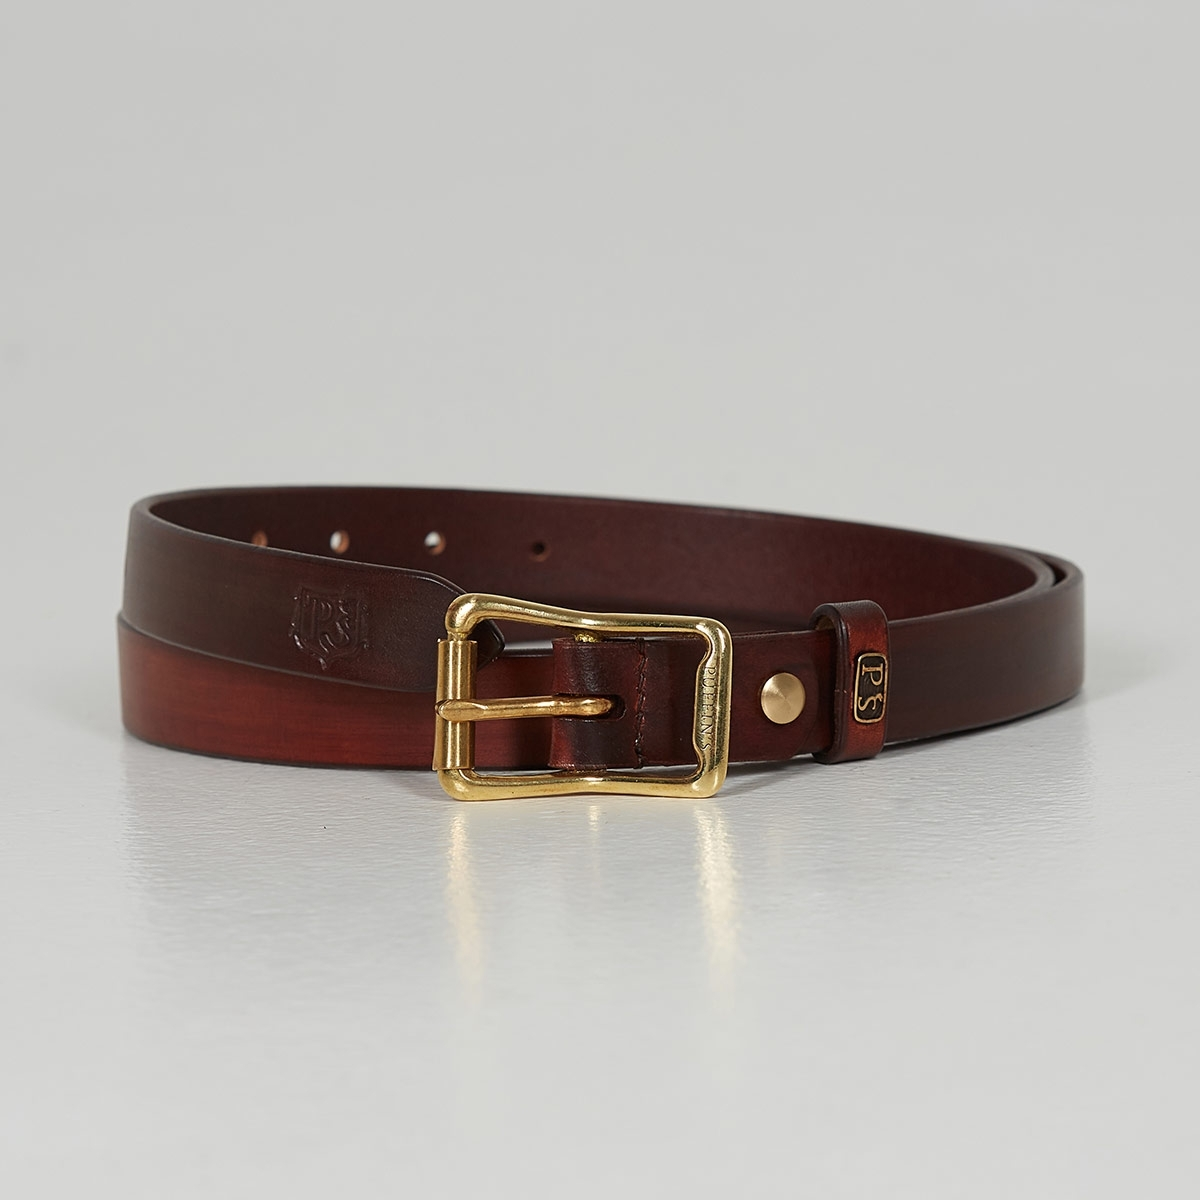 Luxury narrow belt 25mm with patina sandal